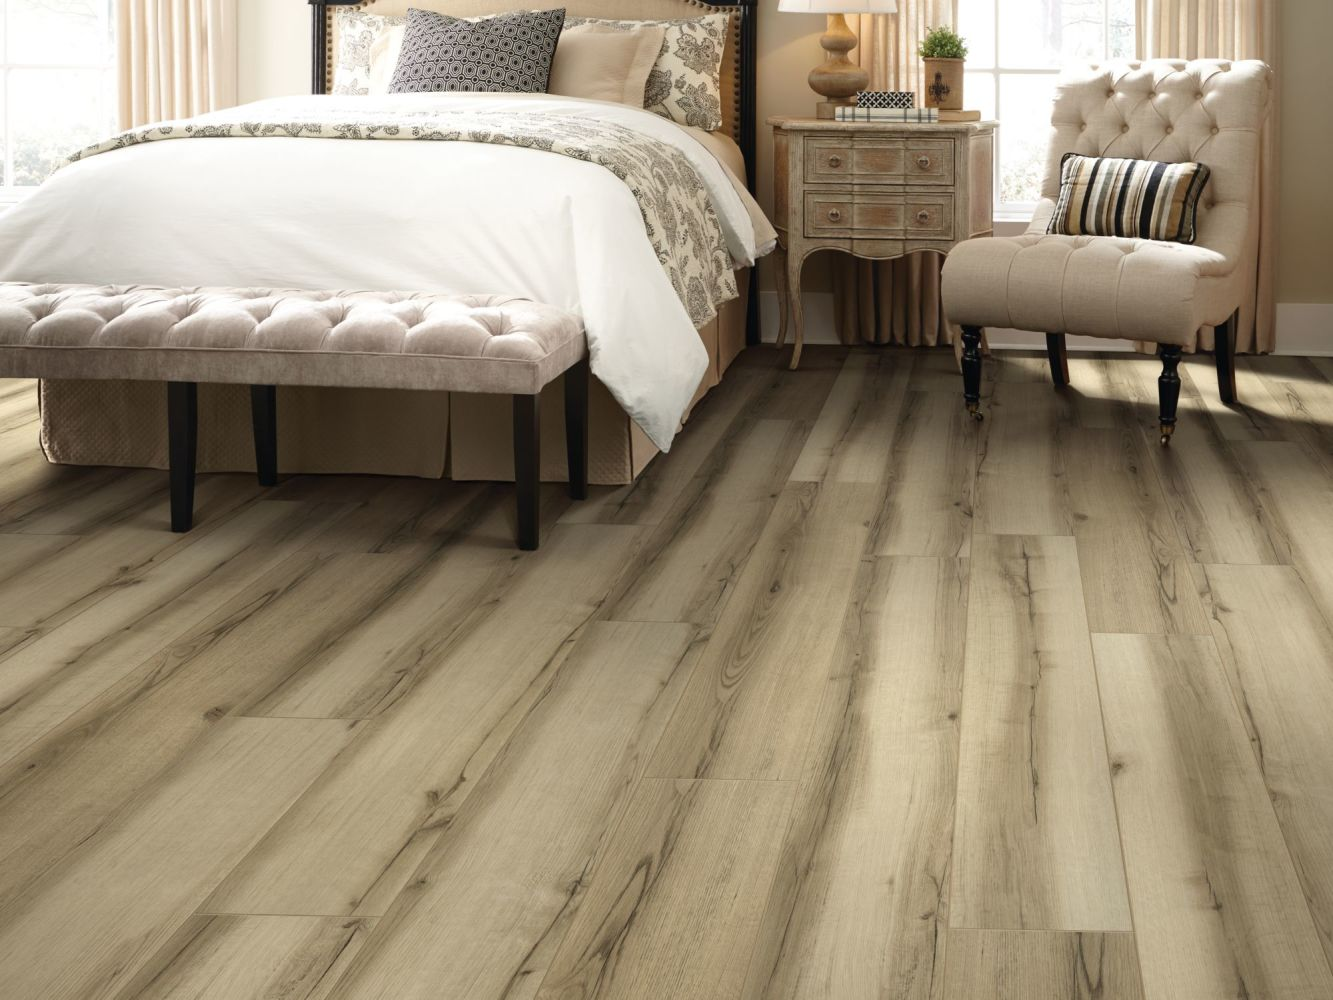 Shaw Floors Resilient Property Solutions Patriot+ Accent Grand Oak 02001_VE380